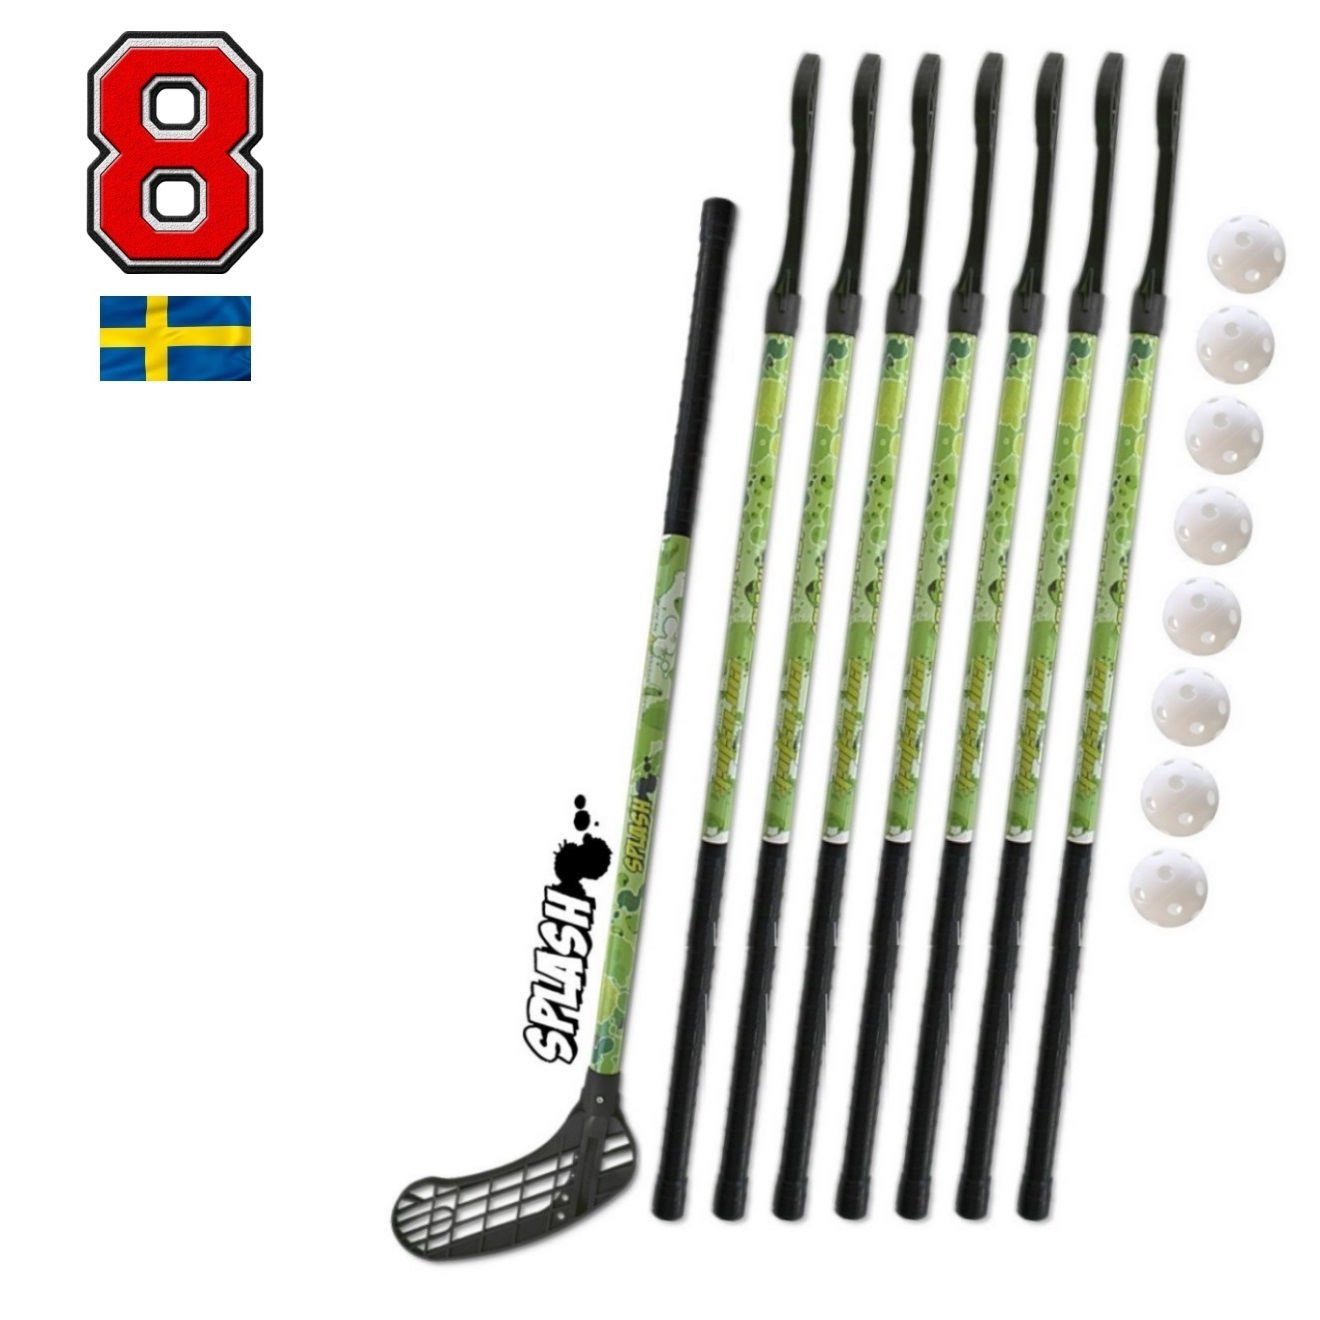 Florbalová sada Eurostick SPLASH GREEN 95 cm 8+8 set